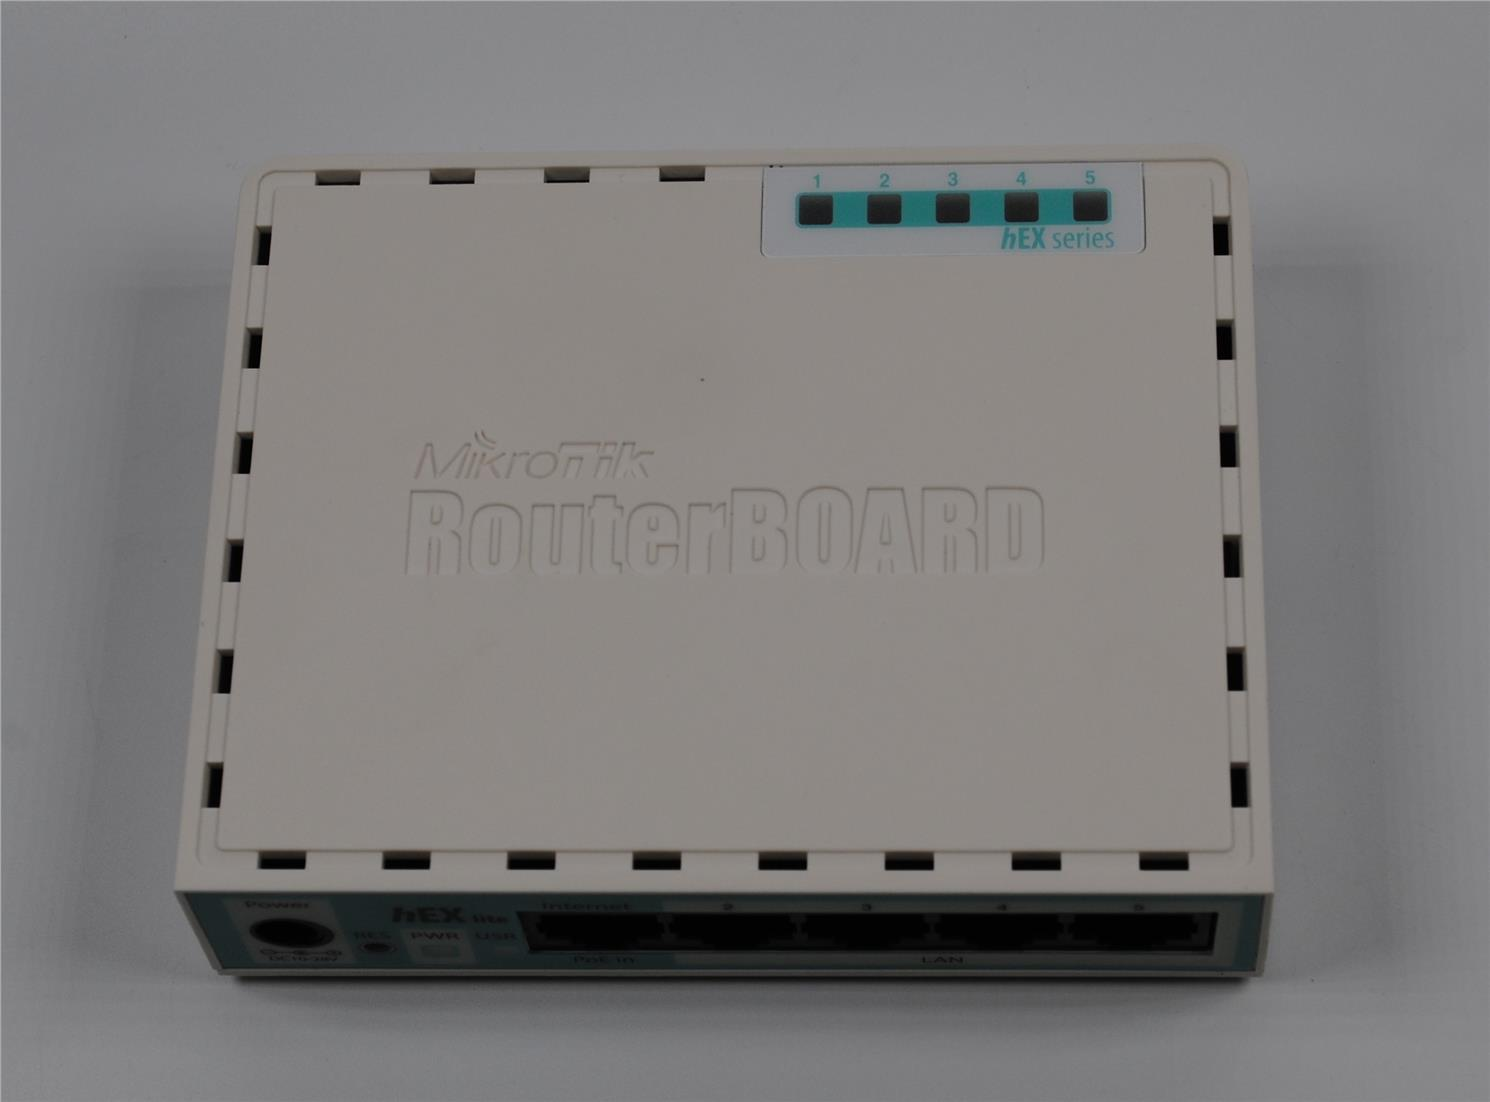 Mikrotik RB750r2 hEX Lite RouterOS Routerboard VPN Router OS